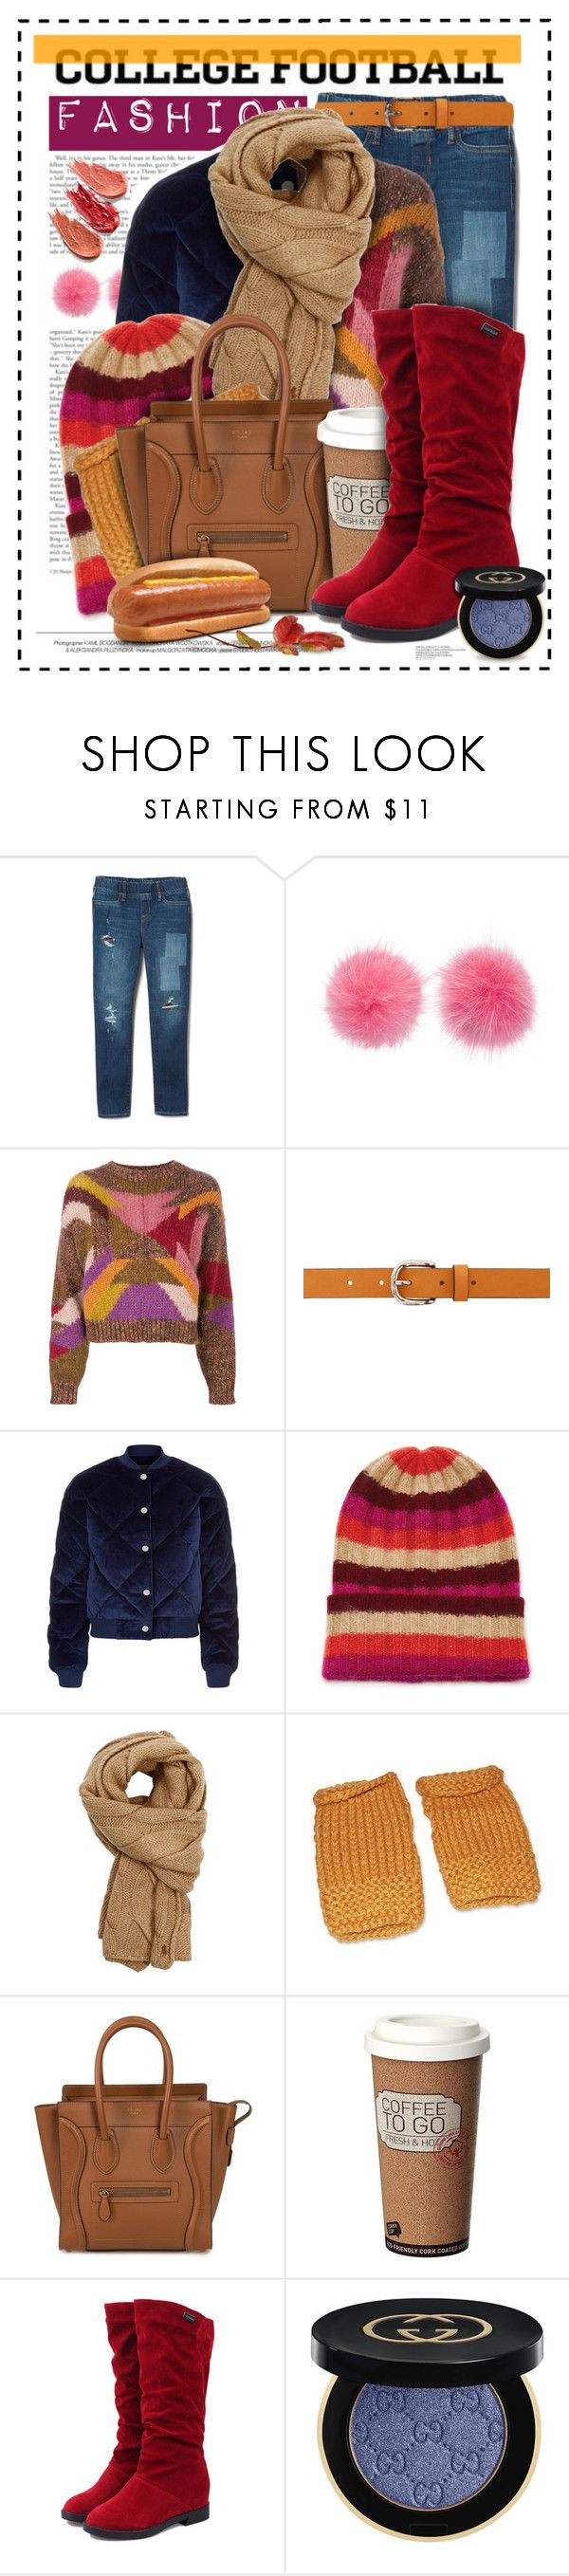 """Thanksgiving Football Game Fashion..."" by angiesprad ❤ liked on Polyvore featuring Wild & Woolly, Isabel Marant, Maje, The Elder Statesman, Polo Ralph Lauren, NOVICA, CÉLINE, Gucci and Anastasia Beverly Hills"